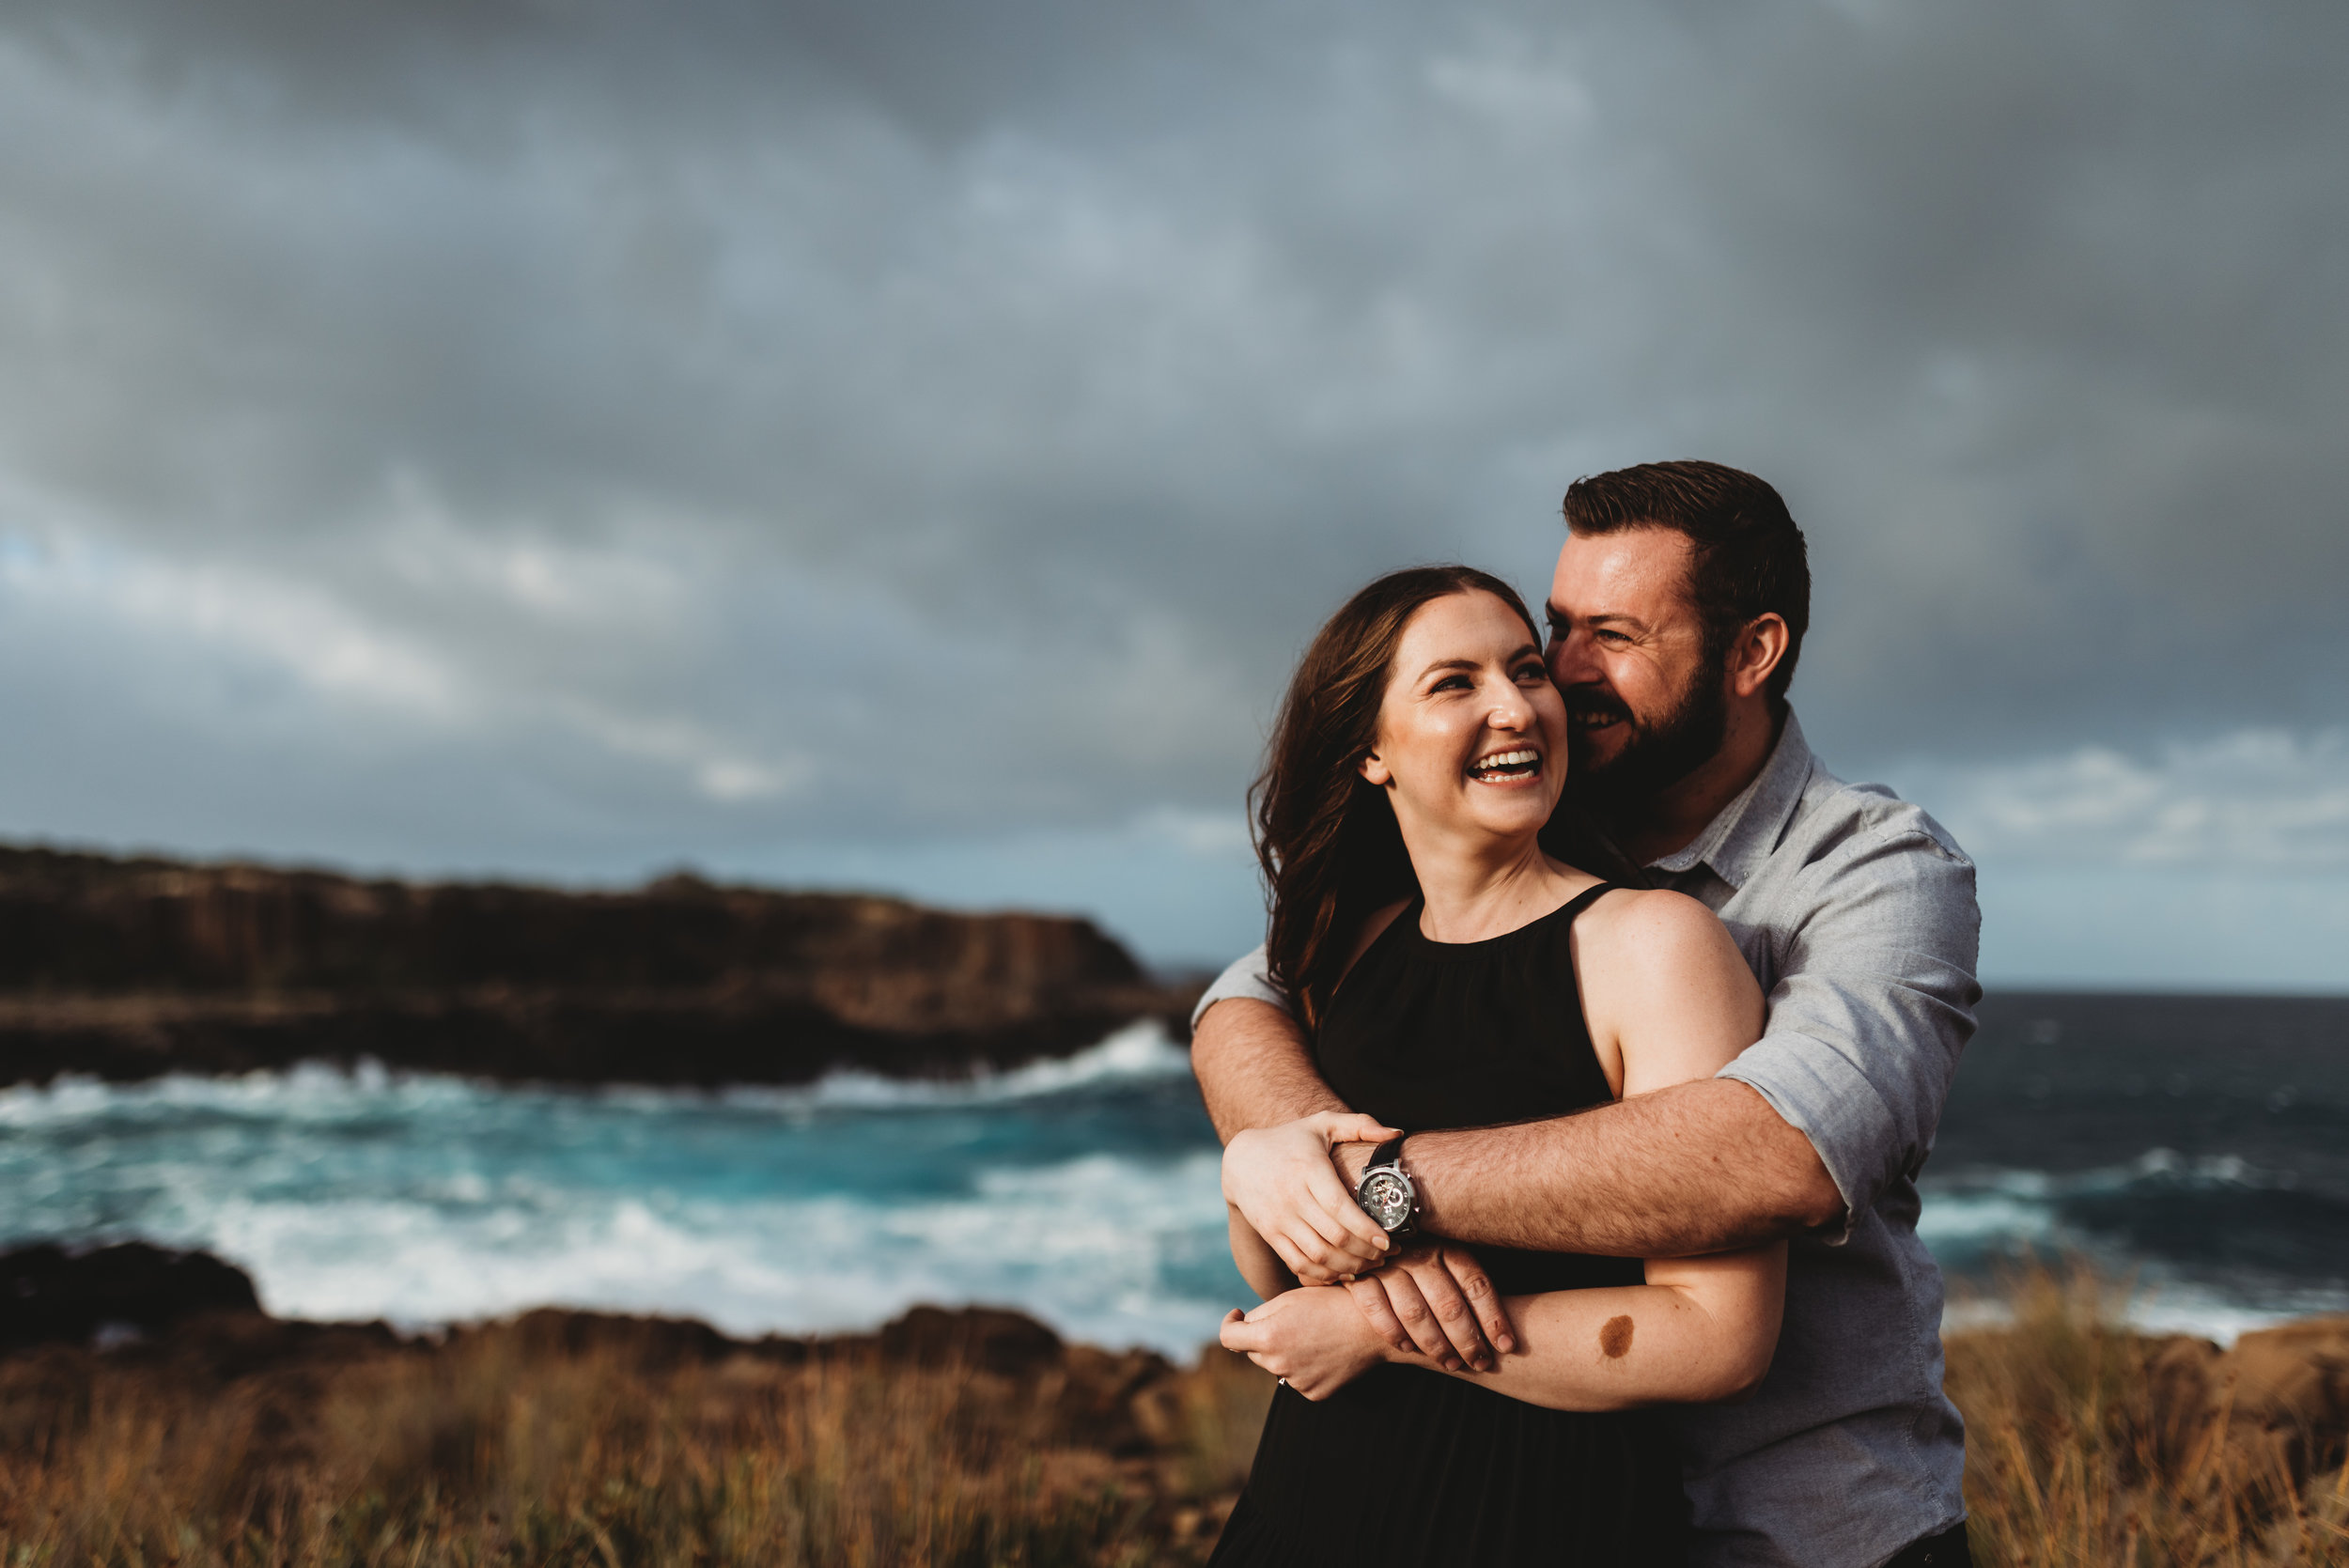 Amy & Matt - Kiama Sunset Engagement     February 24th 2019